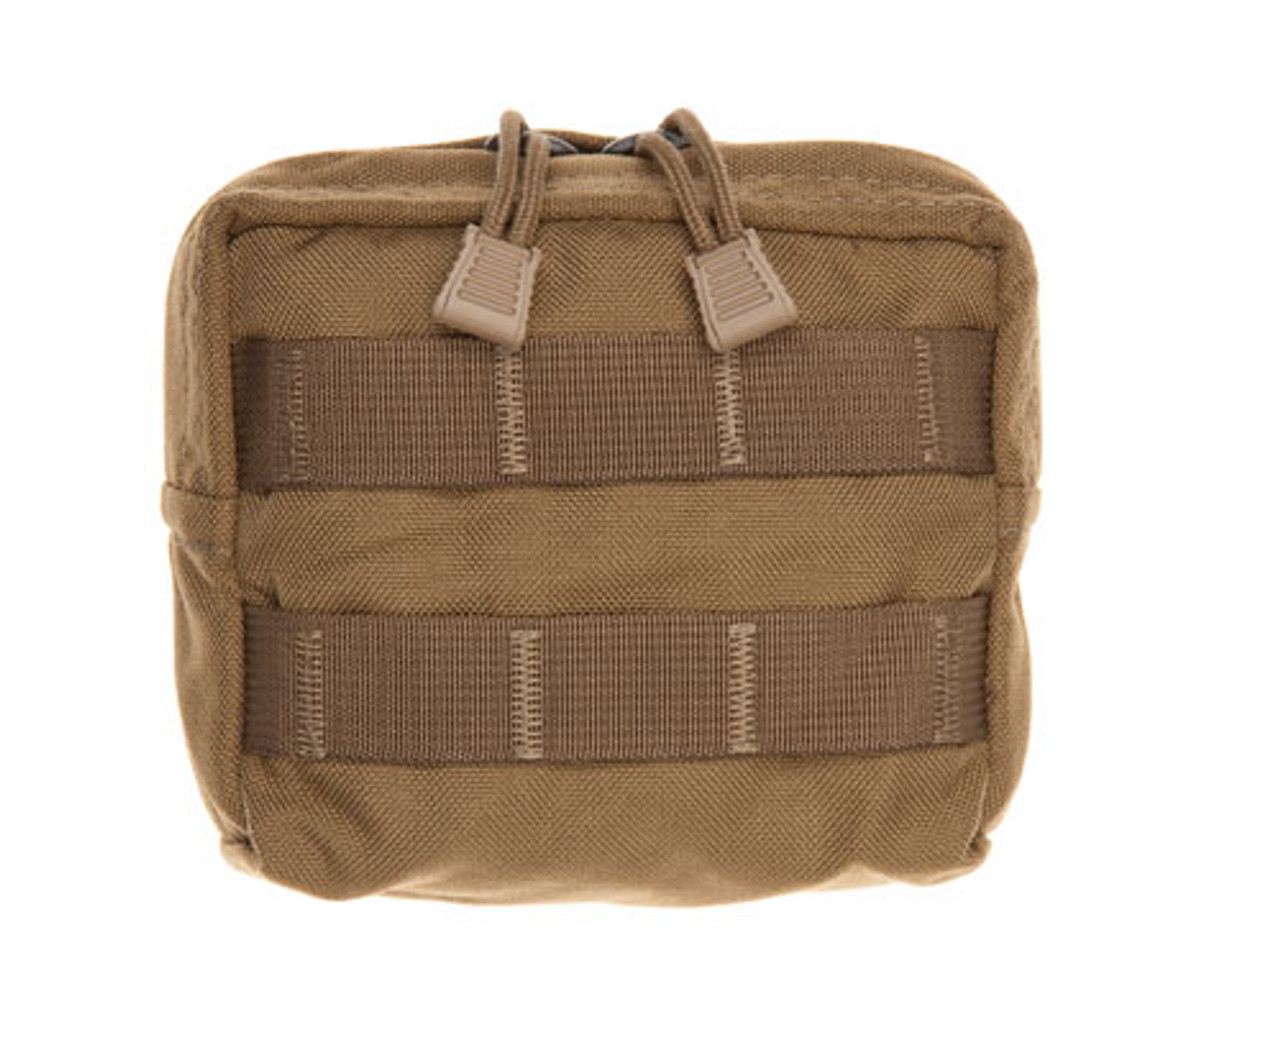 Molle Zippered Utility Pouch by Tac Shield